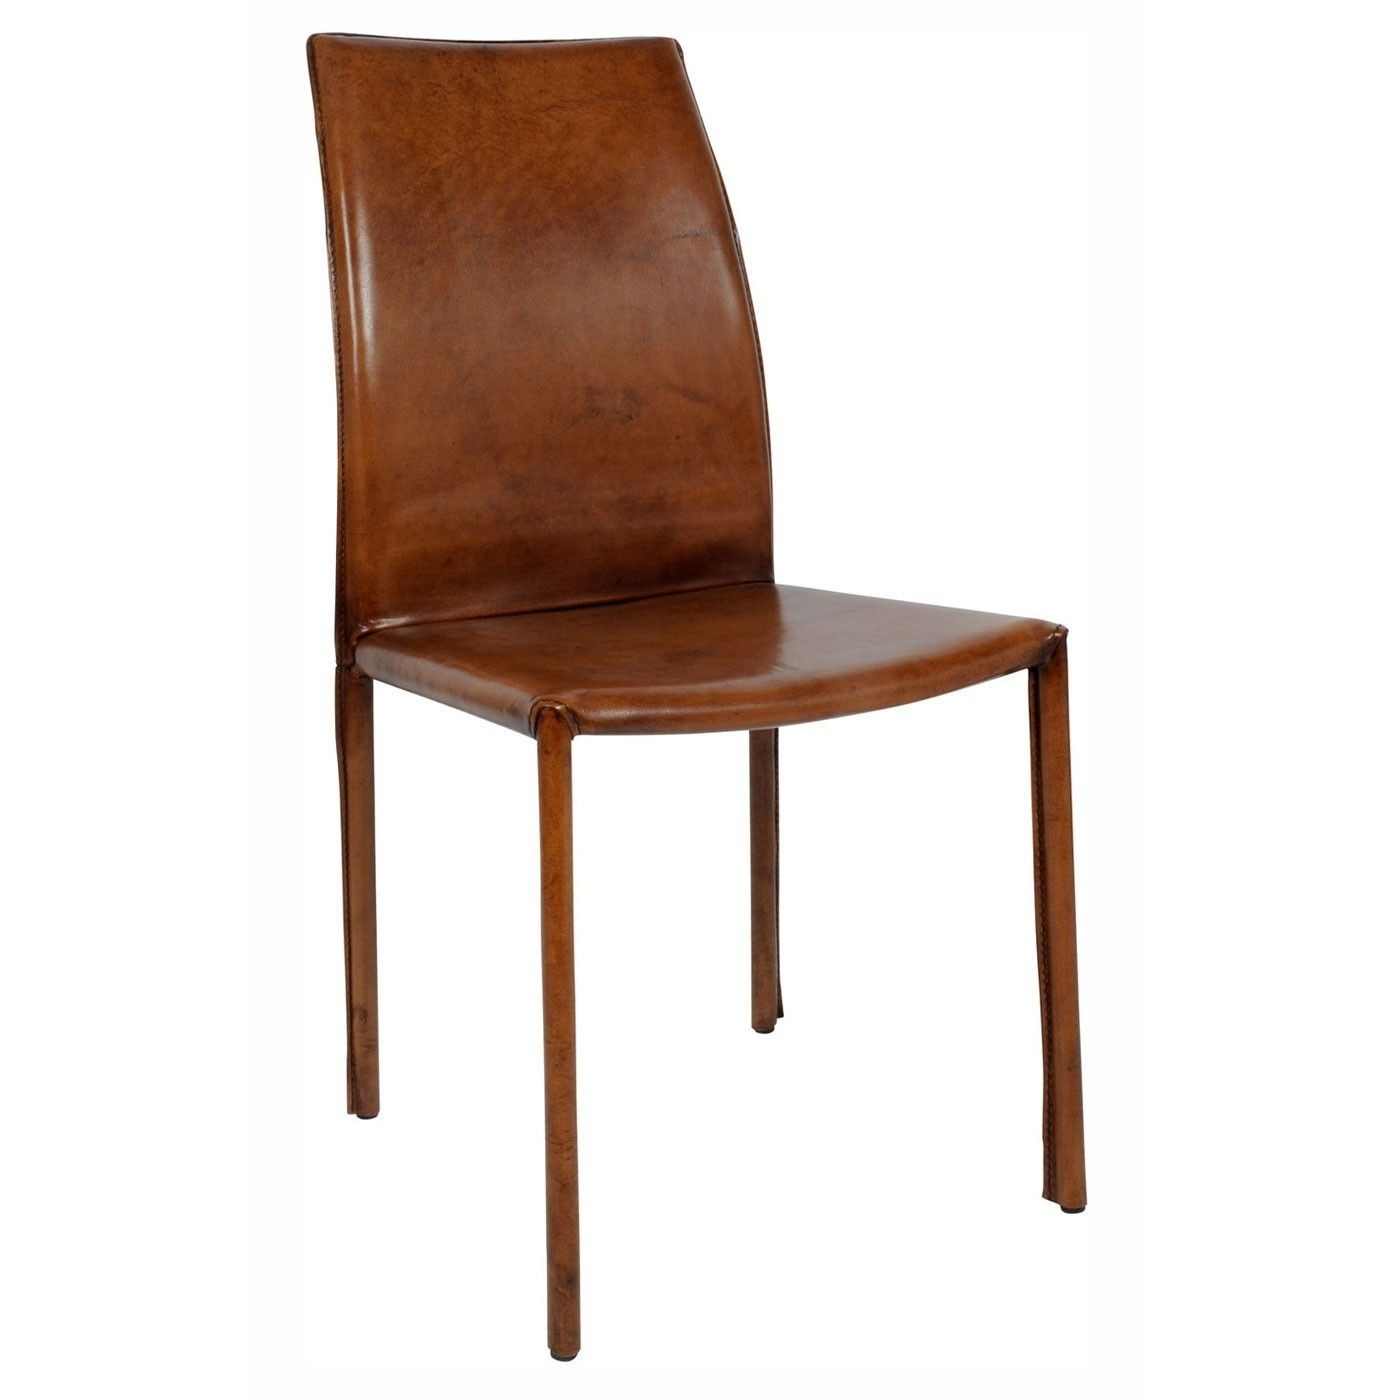 Side Chair, Upholstery And Craftsman Throughout Recent Craftsman Upholstered Side Chairs (#15 of 20)